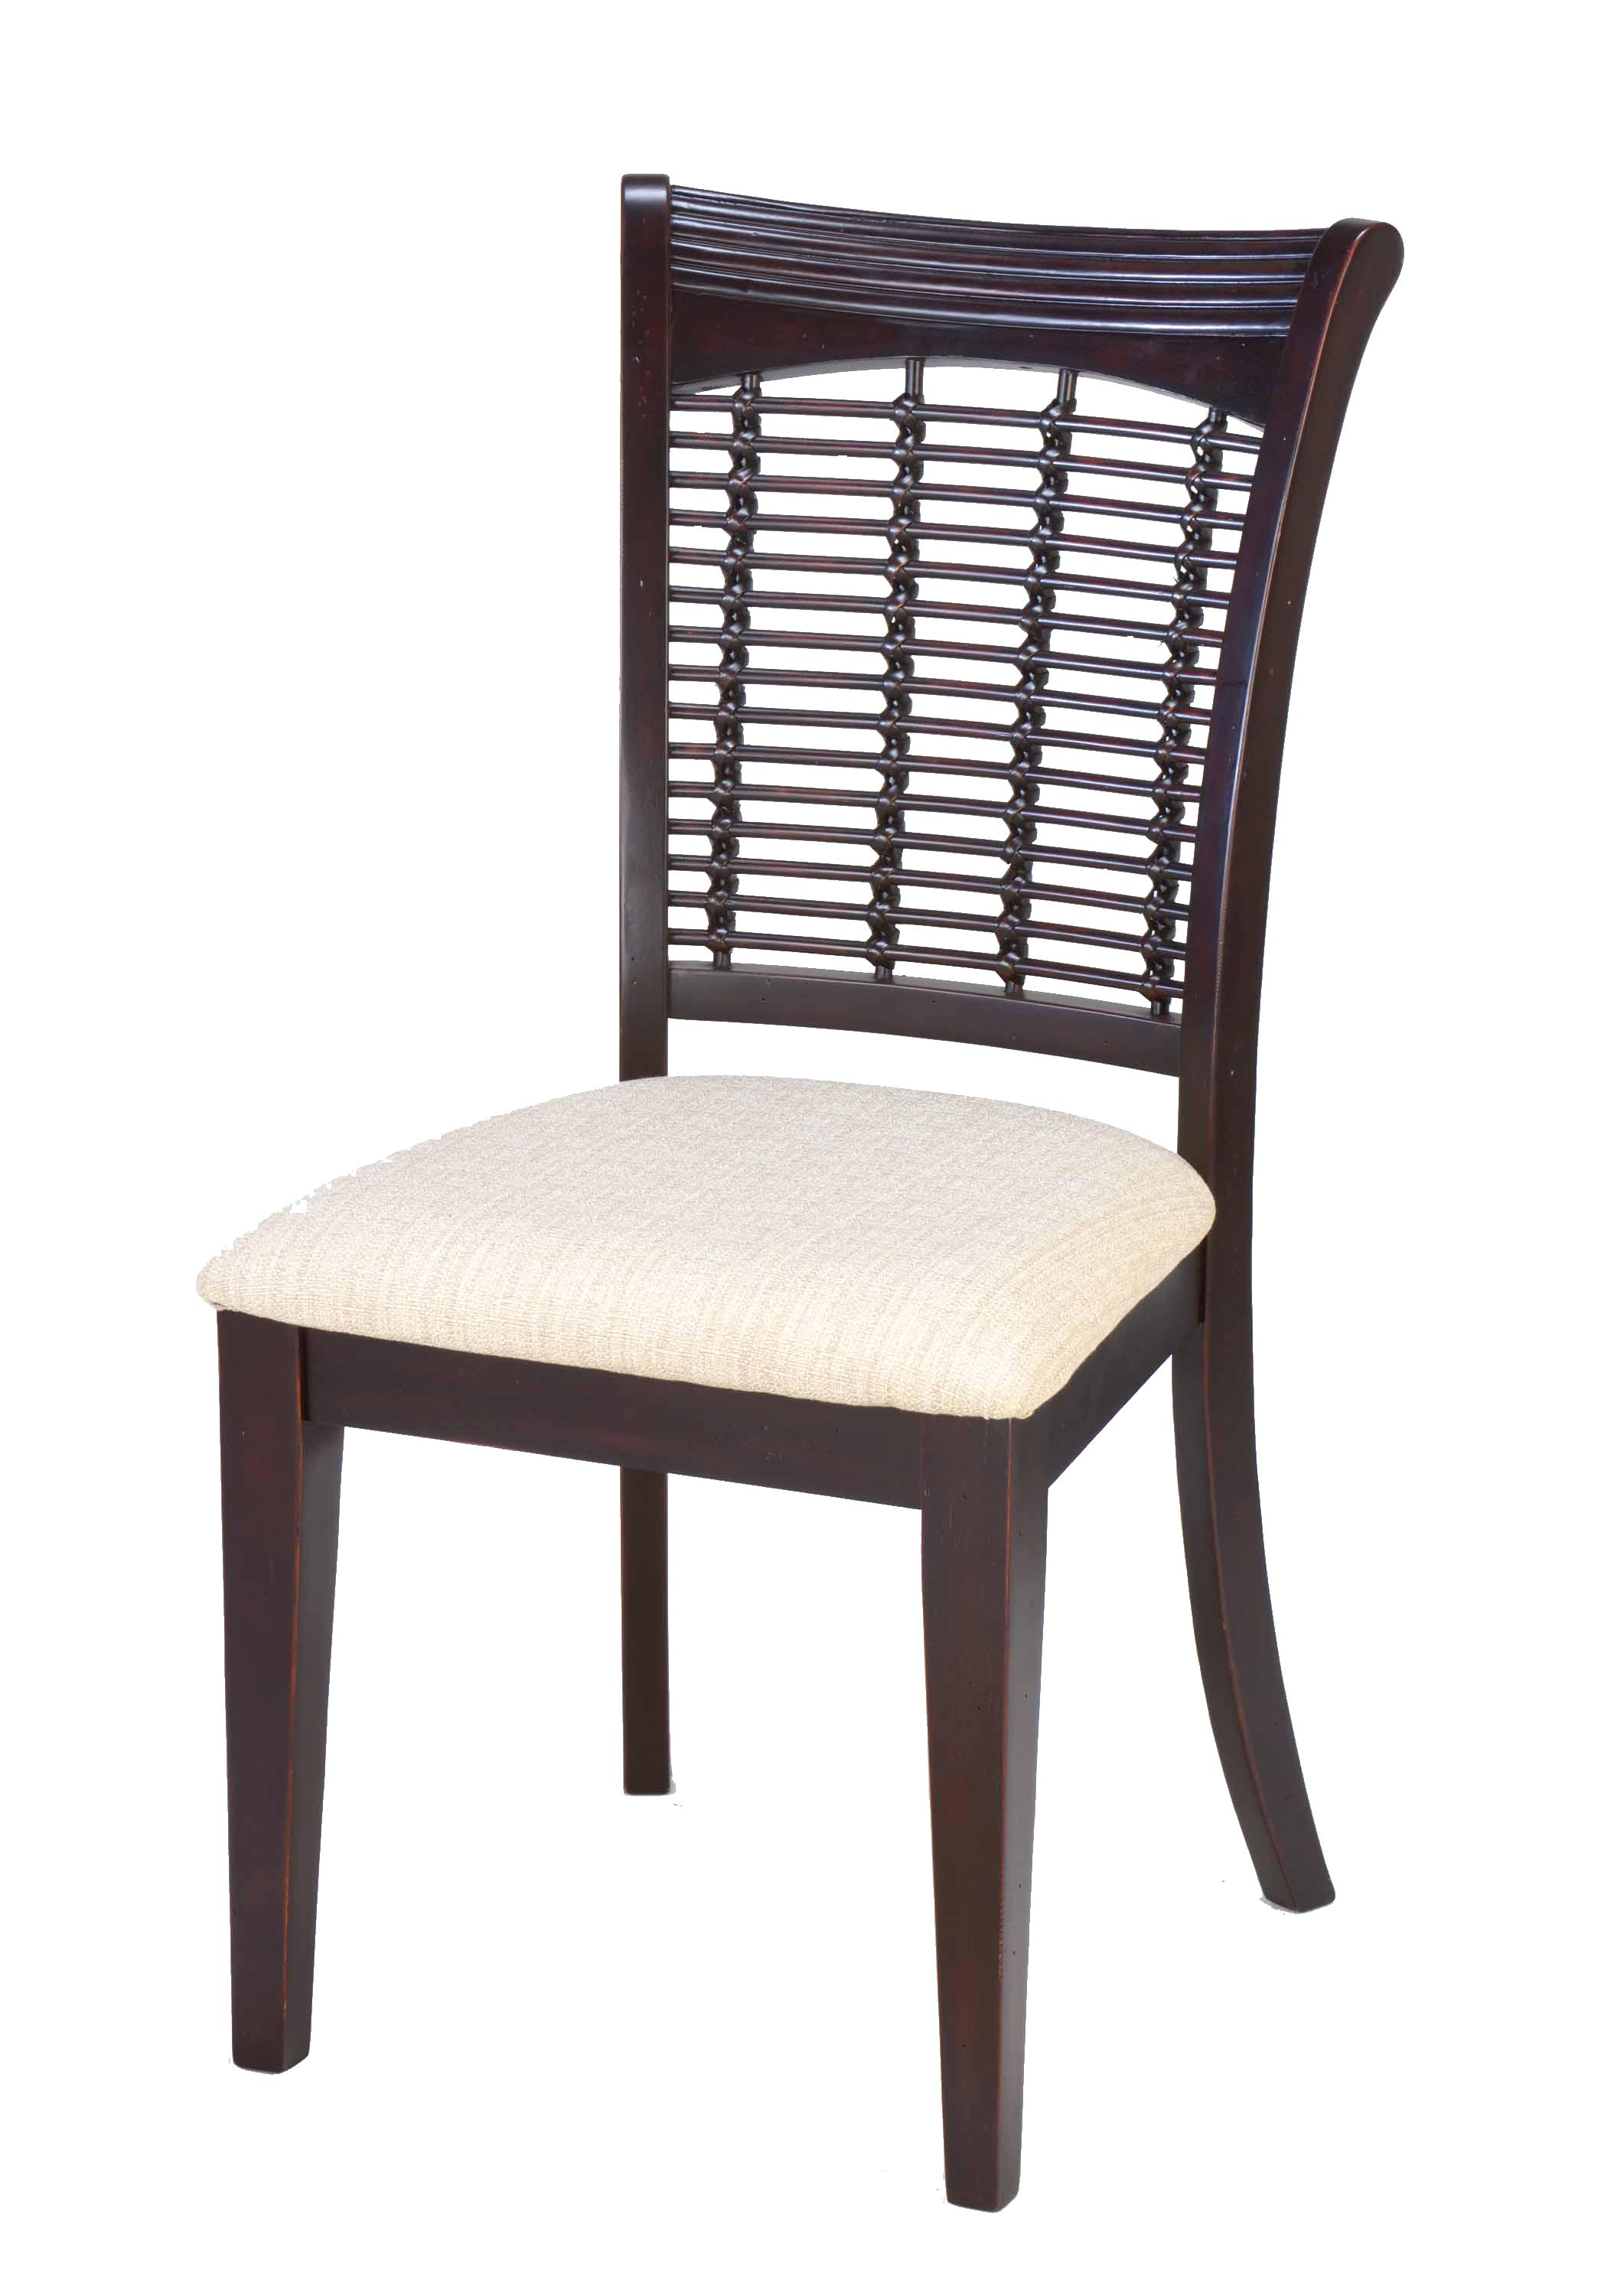 Hillsdale Bayberry and Glenmary Wicker Chair - Item Number: 4783-802